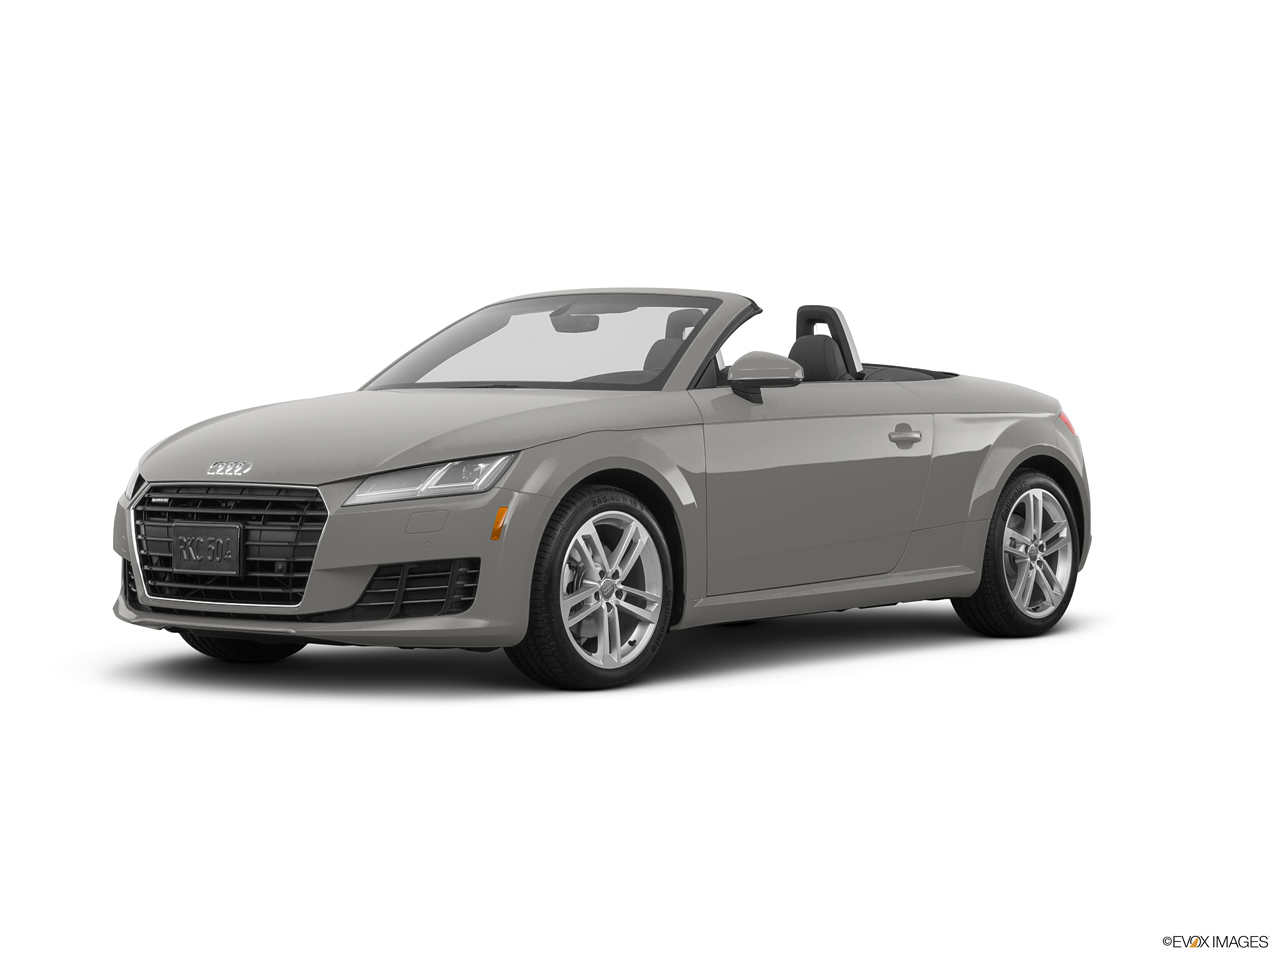 audi tt roadster 2017 45 tfsi quattro 230 hp in bahrain new car prices specs reviews photos. Black Bedroom Furniture Sets. Home Design Ideas